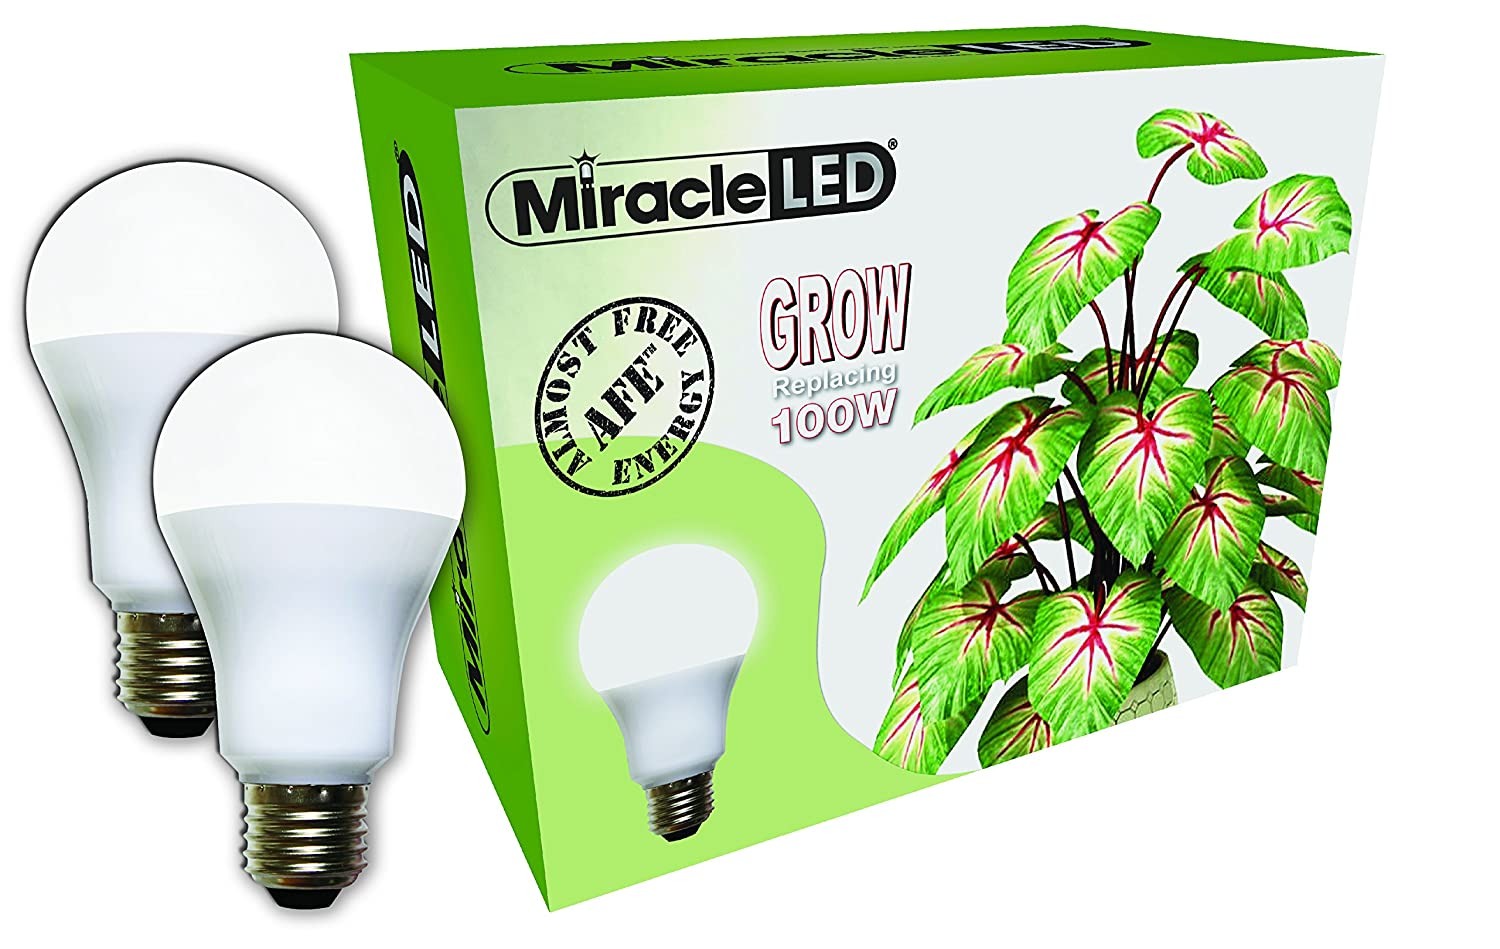 Miracle LED Almost Free Energy 100W Spectrum Grow Lite - Daylight White Full Spectrum LED Indoor Plant Growing Light Bulb for DIY Horticulture, Hydroponics, and Indoor Gardens (604301) 2Pack